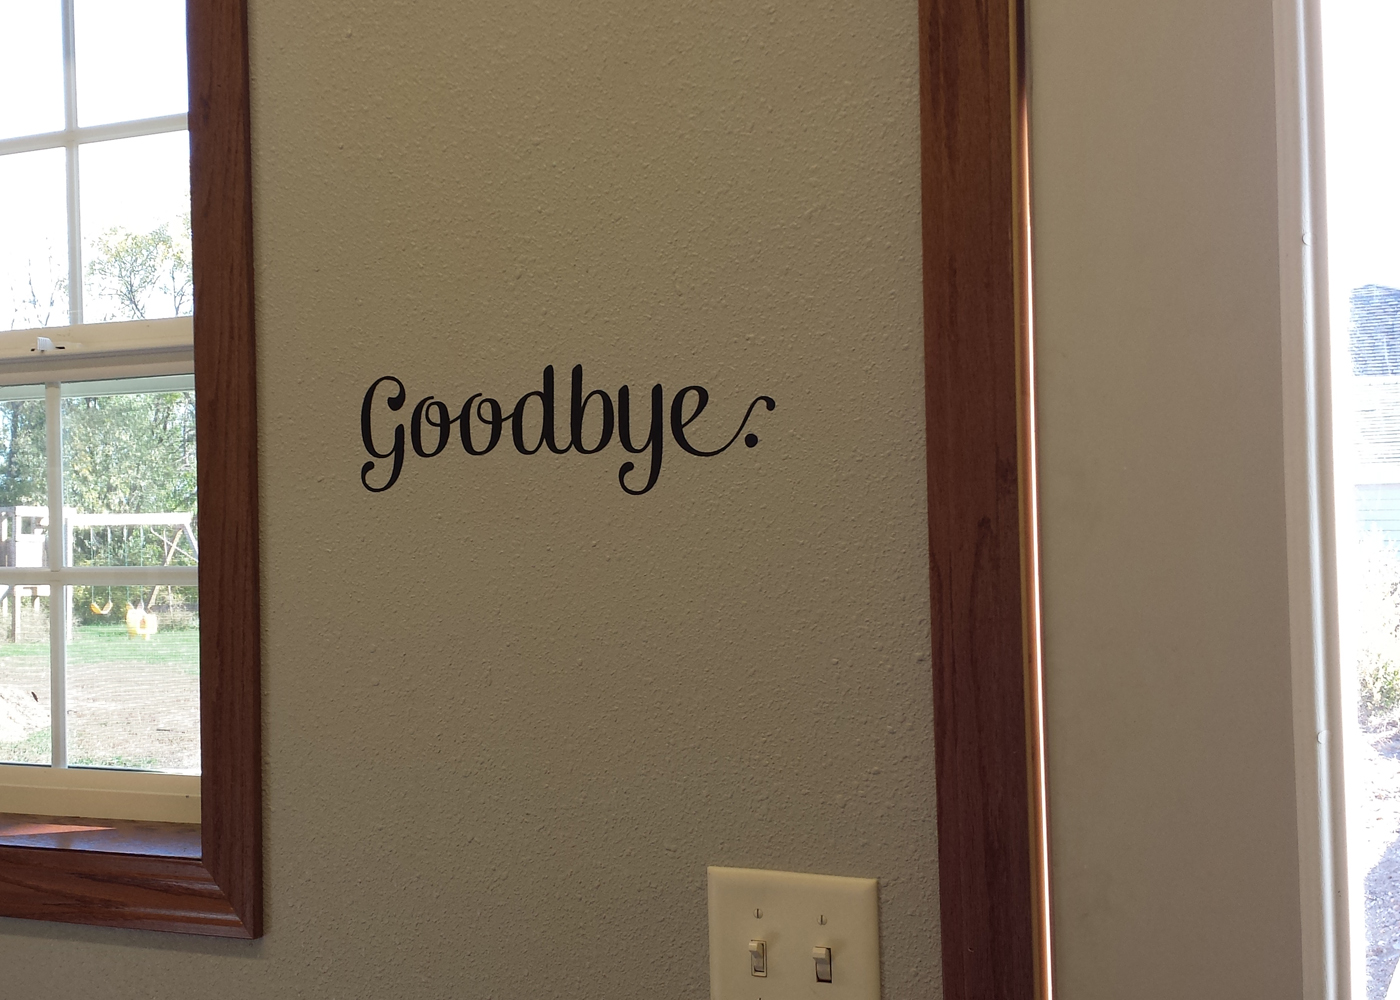 da023-h-i-hello-goodbye-wall-decal-saying.jpg